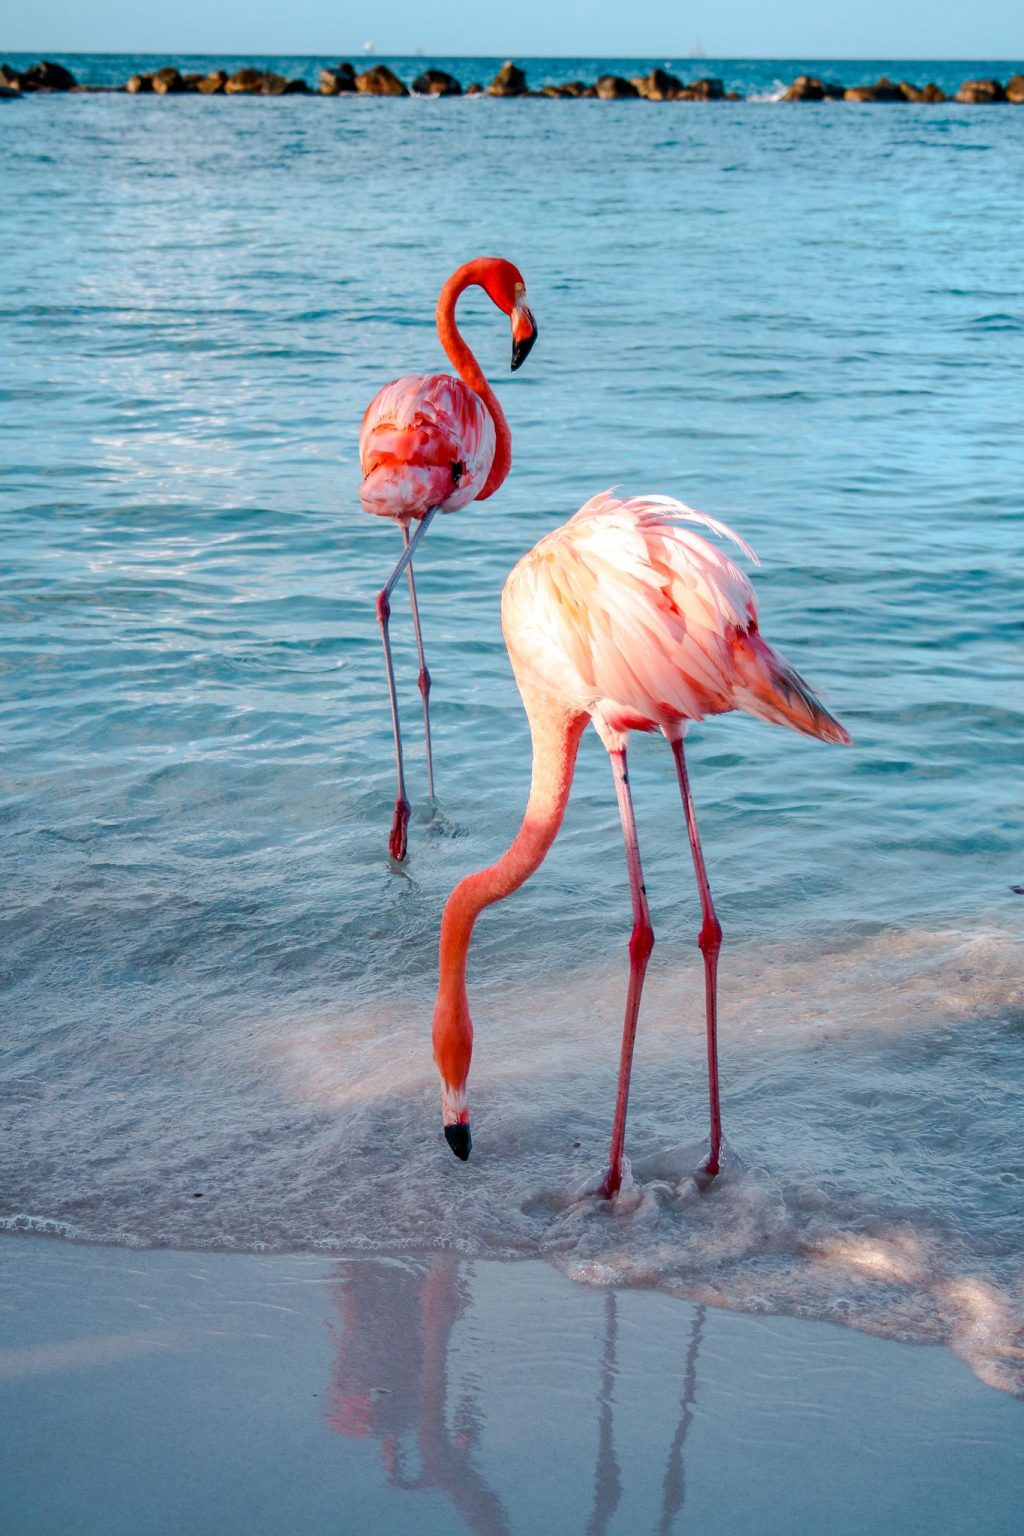 Flamingos at Flamingo Beach in Aruba